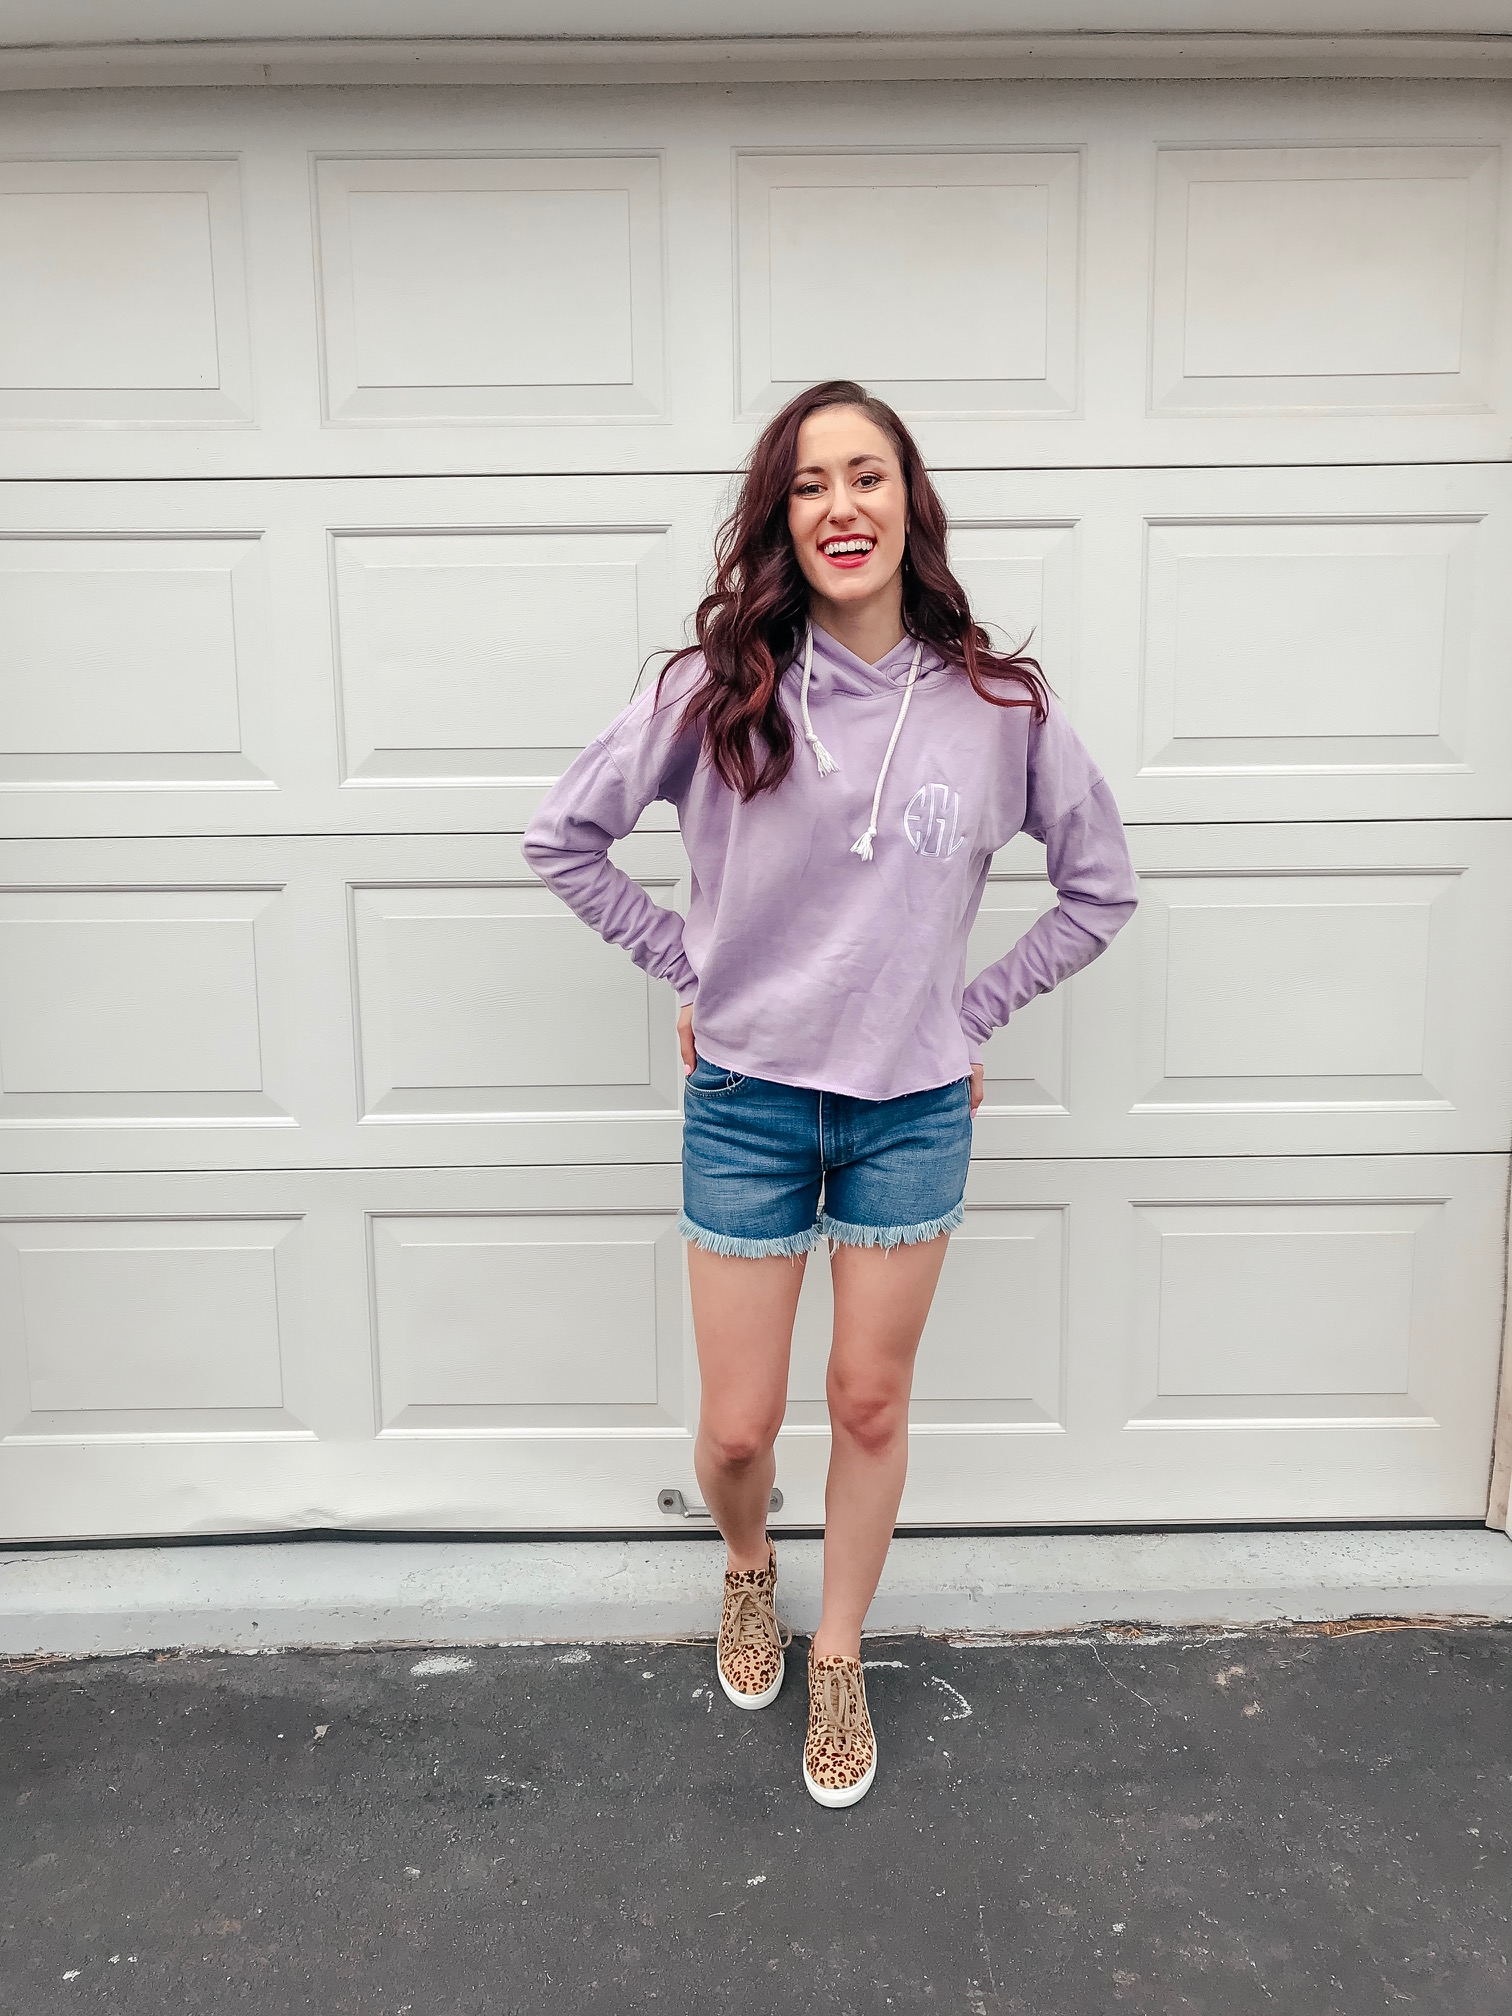 Tips on Styling Sweatshirts for Spring on Coming Up Roses